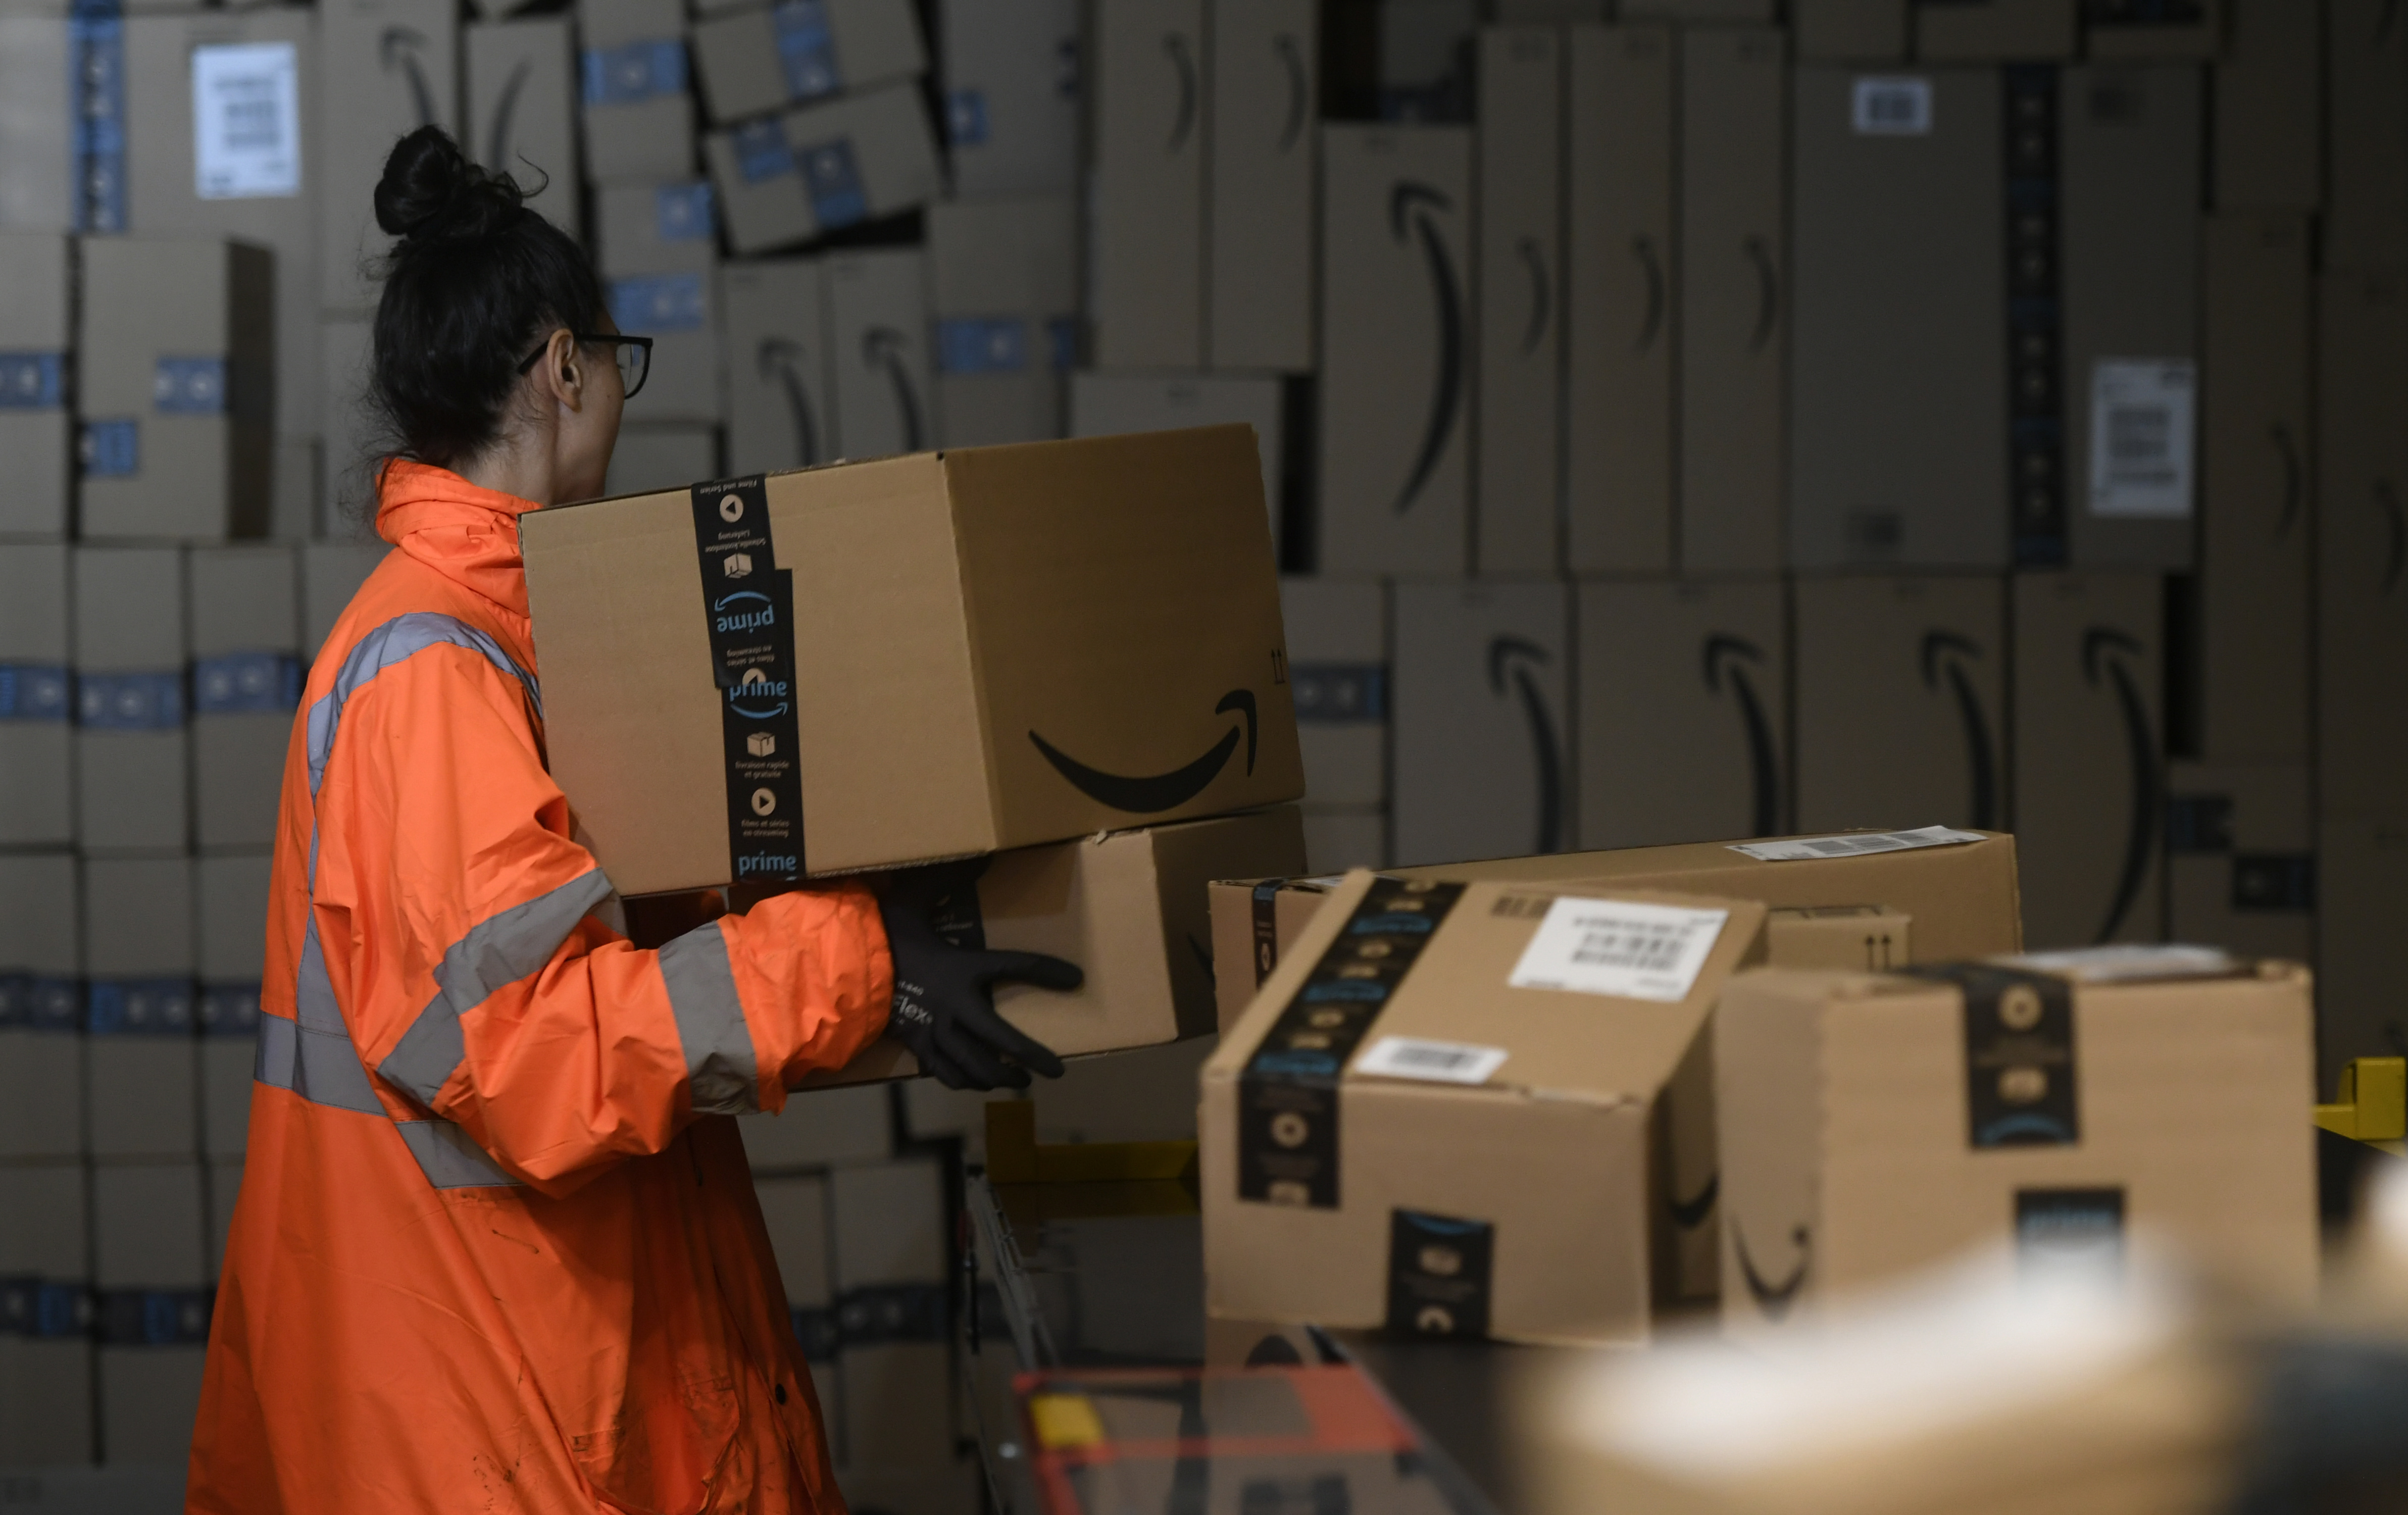 A warehouse employee handles an Amazon package at a distribution center.